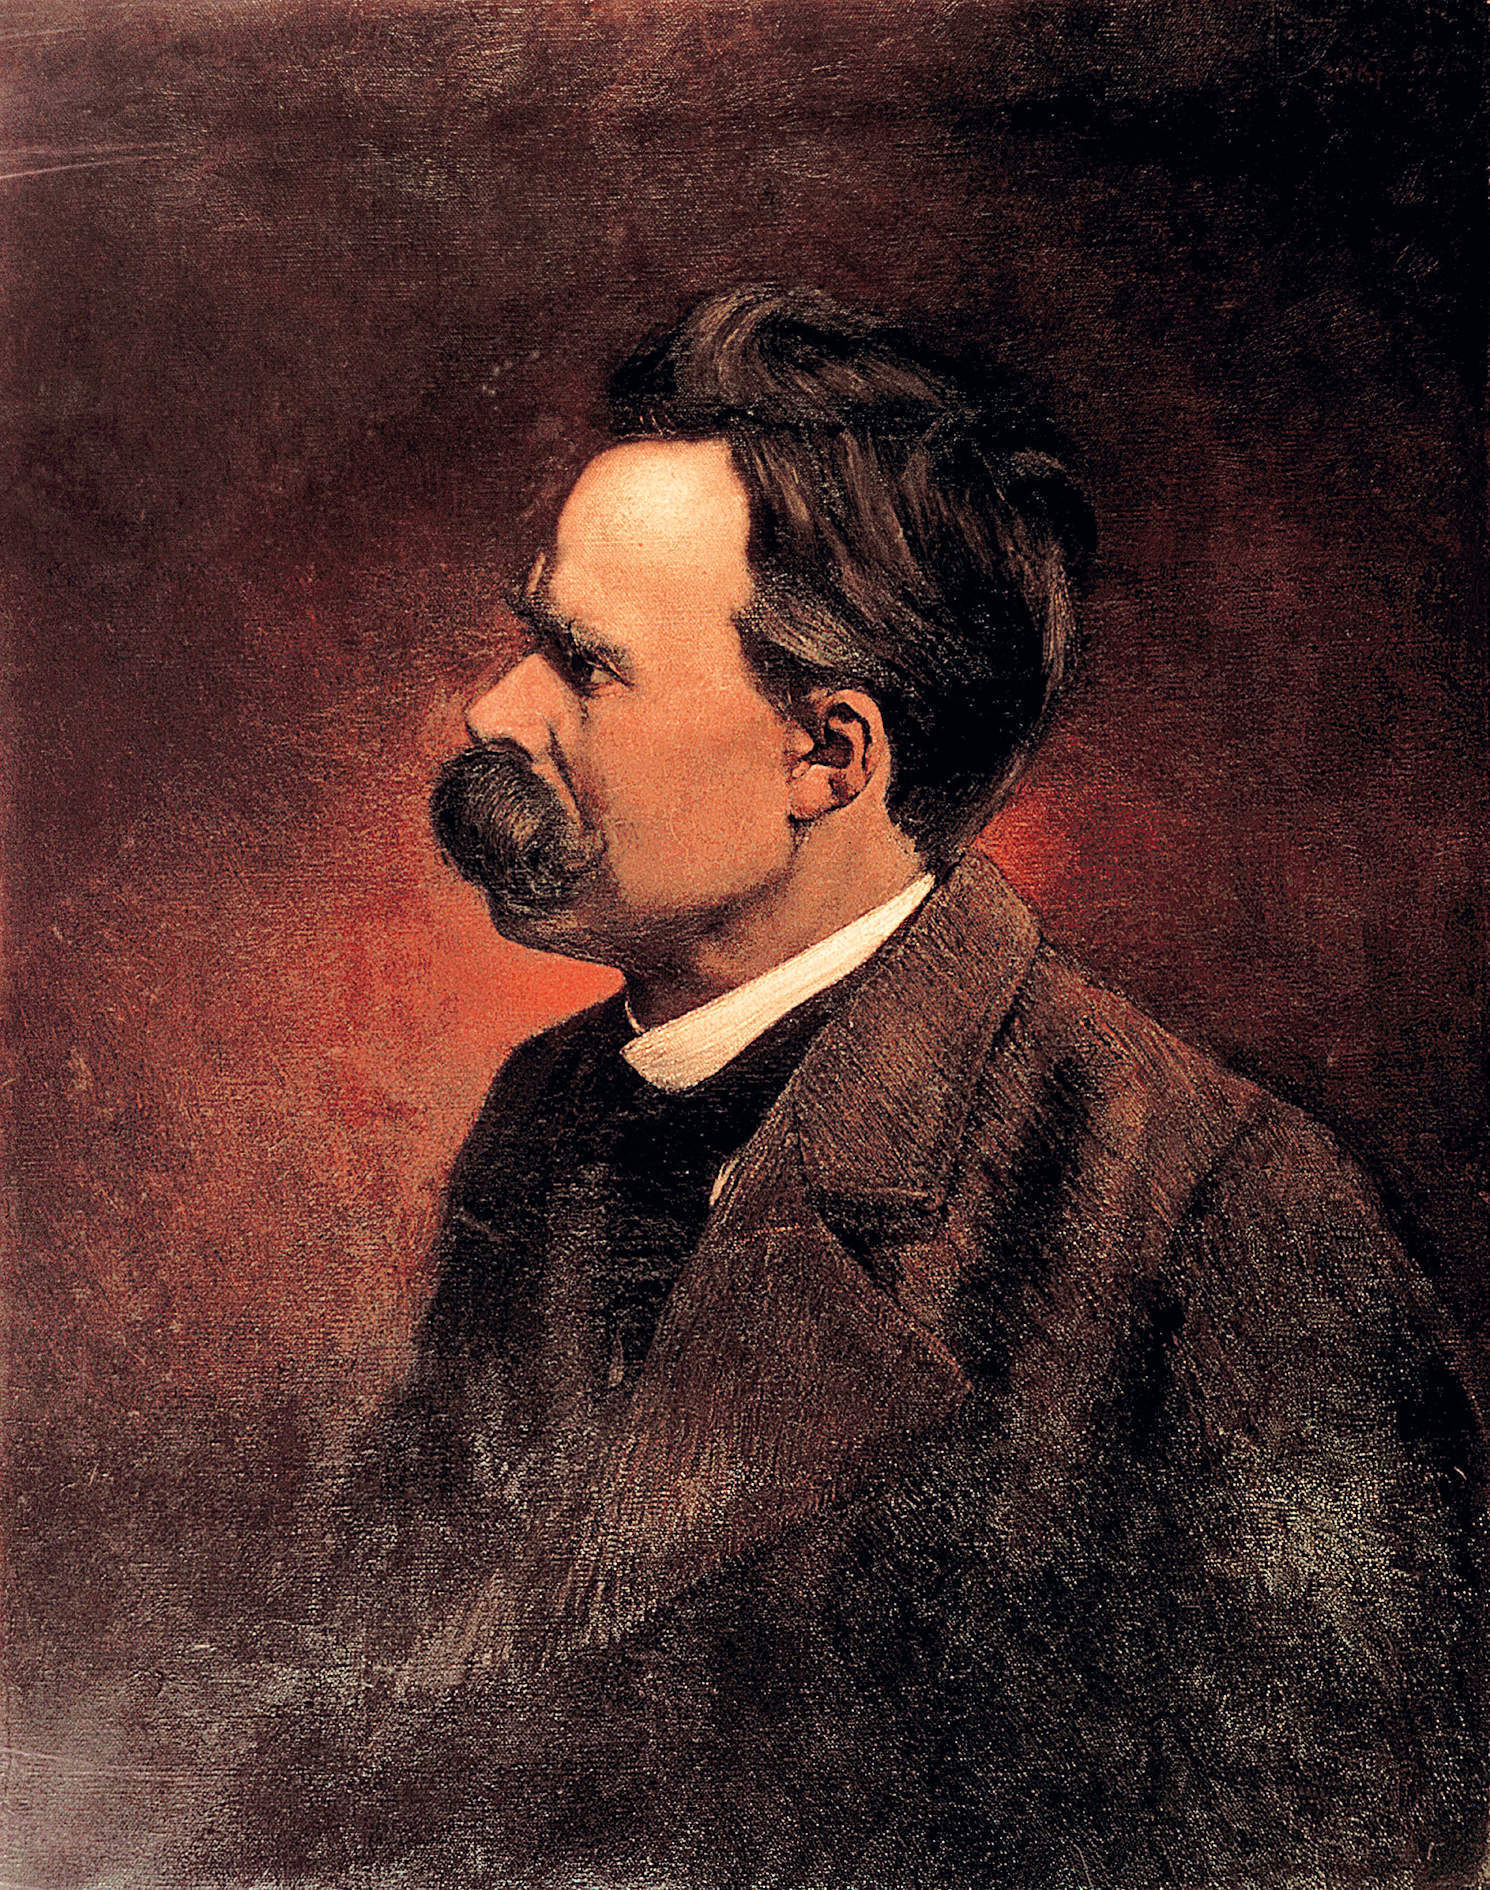 The agony and the destiny: Friedrich Nietzsche's descent into madness